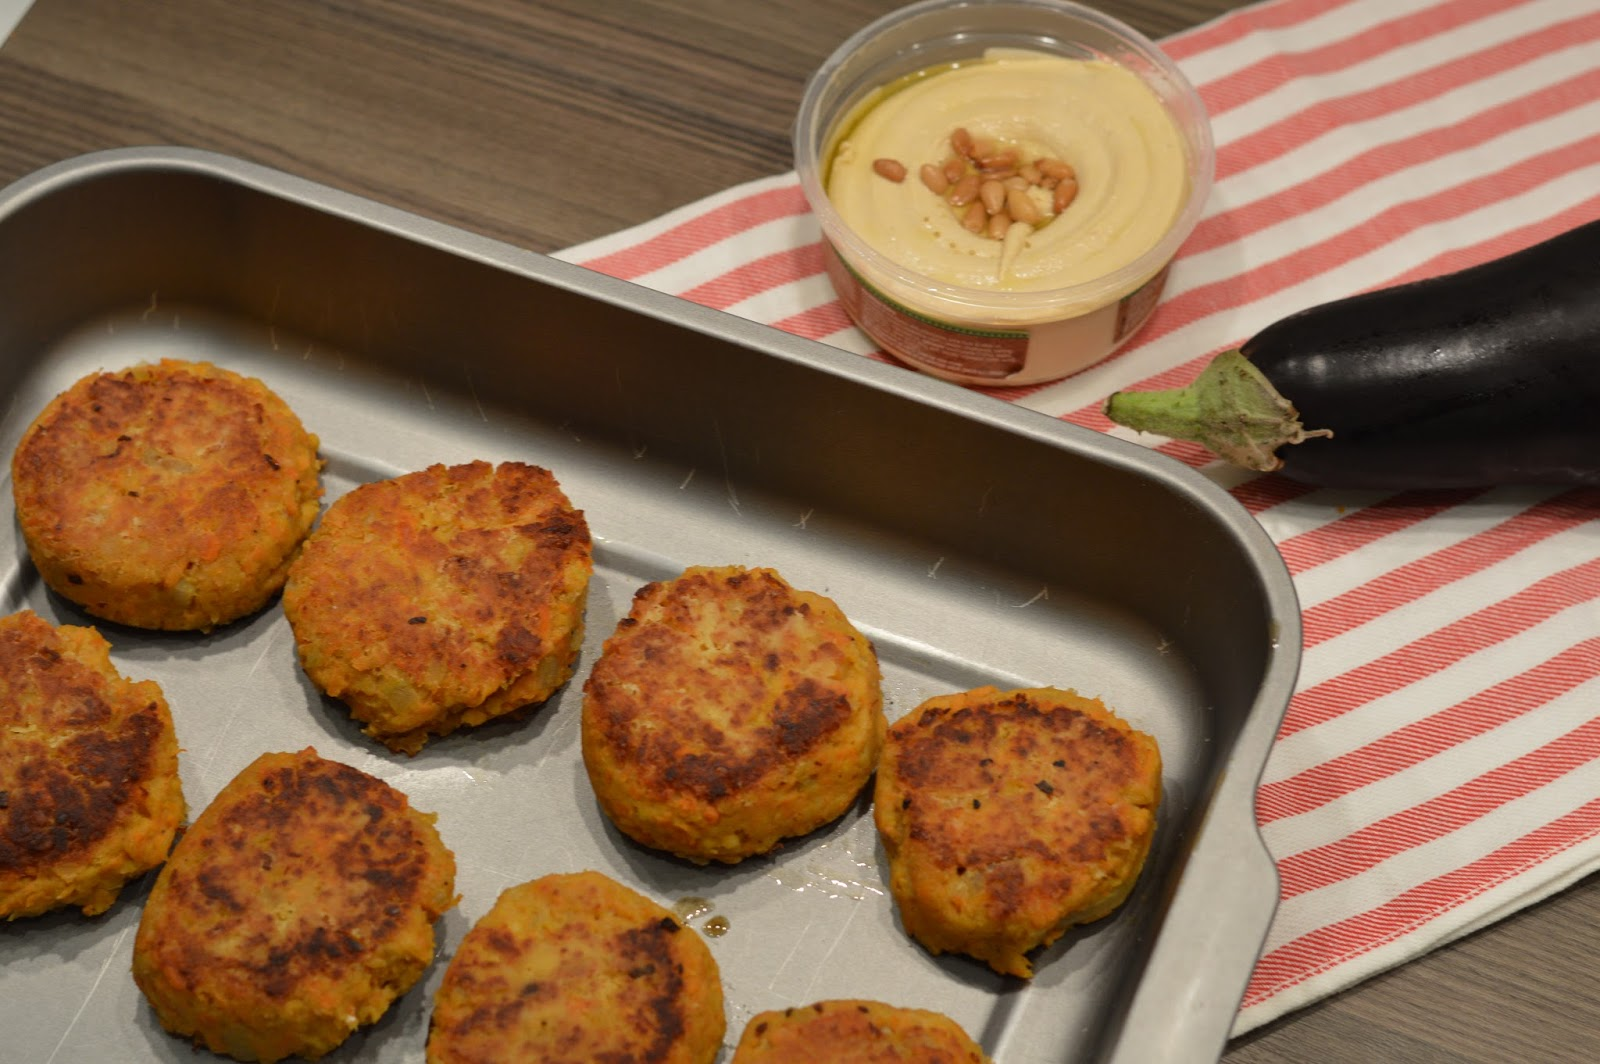 Vegetarian recipe: sweet potato and chickpea cakes burgers patties with humous